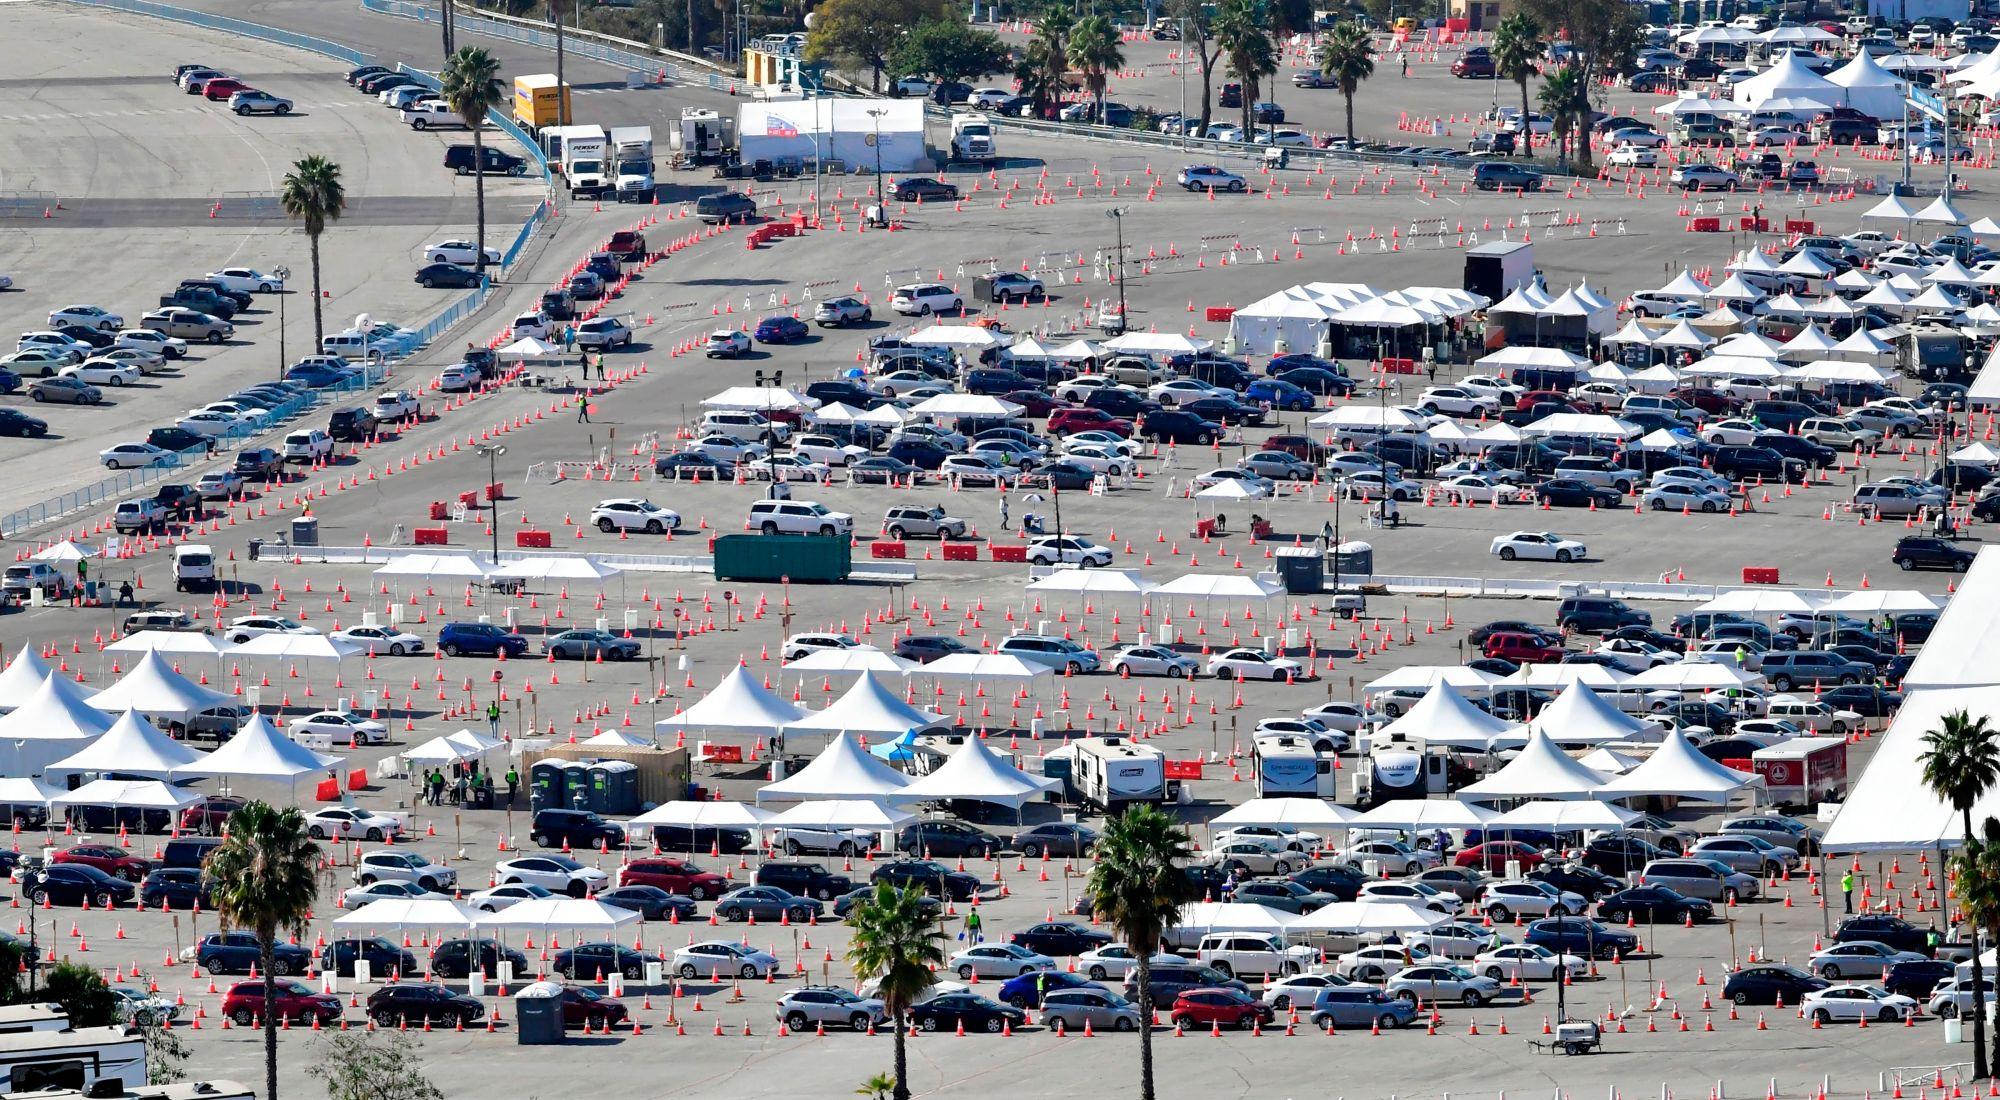 People in vehicles wait in line for their COVID-19 vaccine shot in the parking lot at Dodger Stadium on Feb. 25, 2021. (Frederic J. Brown / AFP / Getty Images)